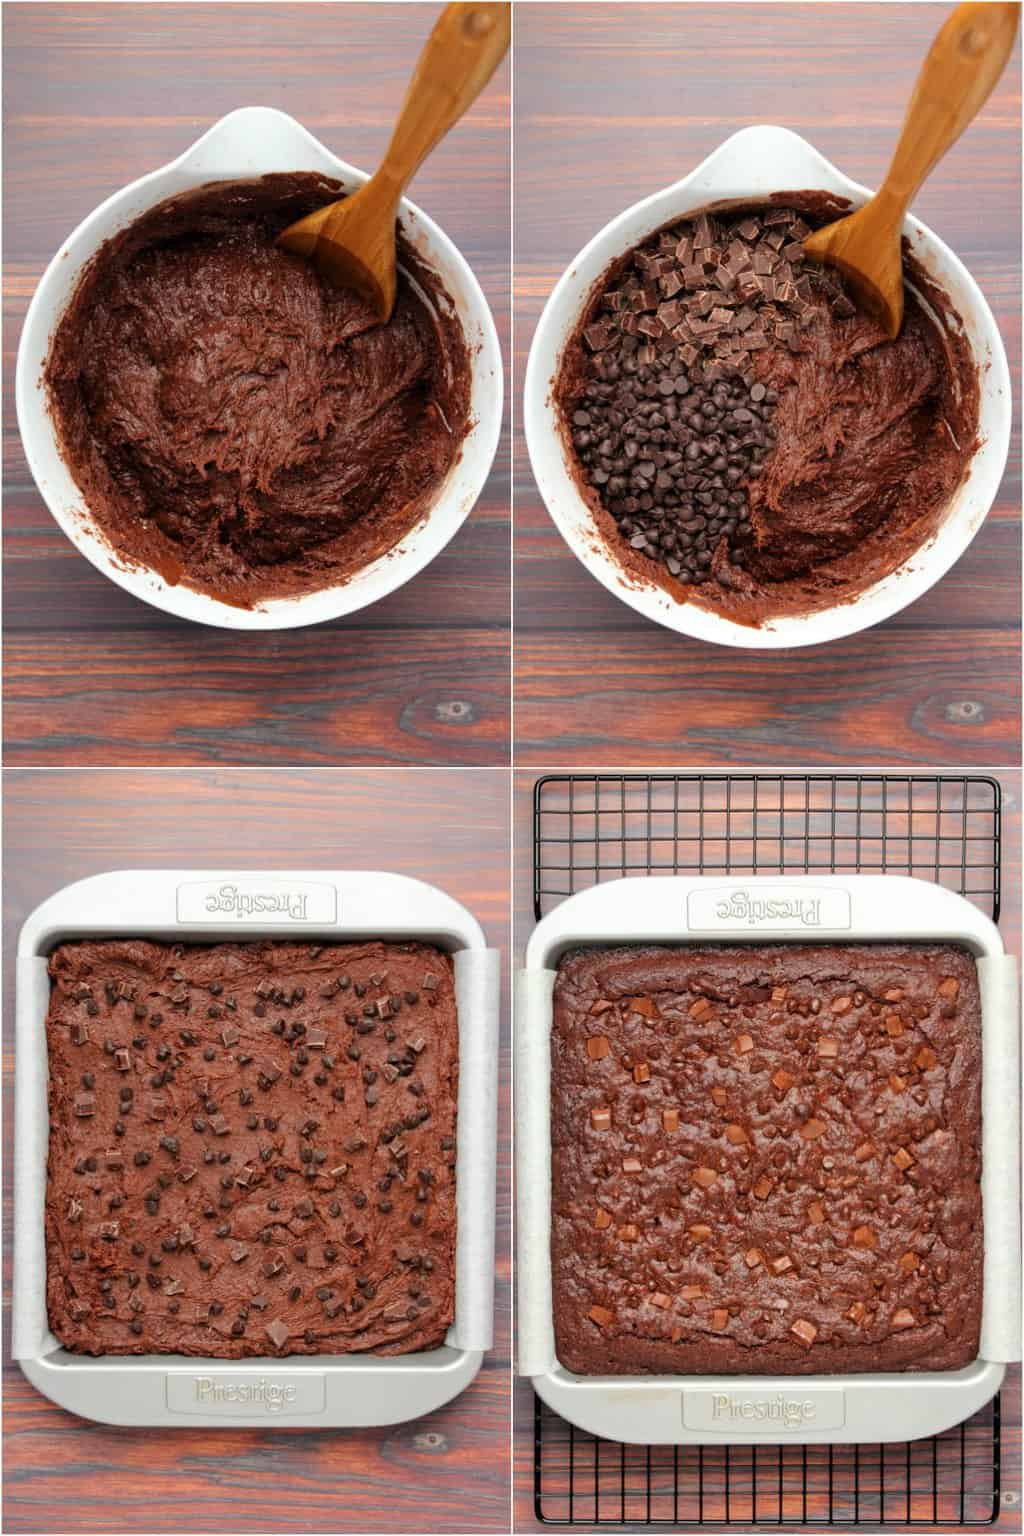 Step by step process photo collage of making vegan chocolate brownies.